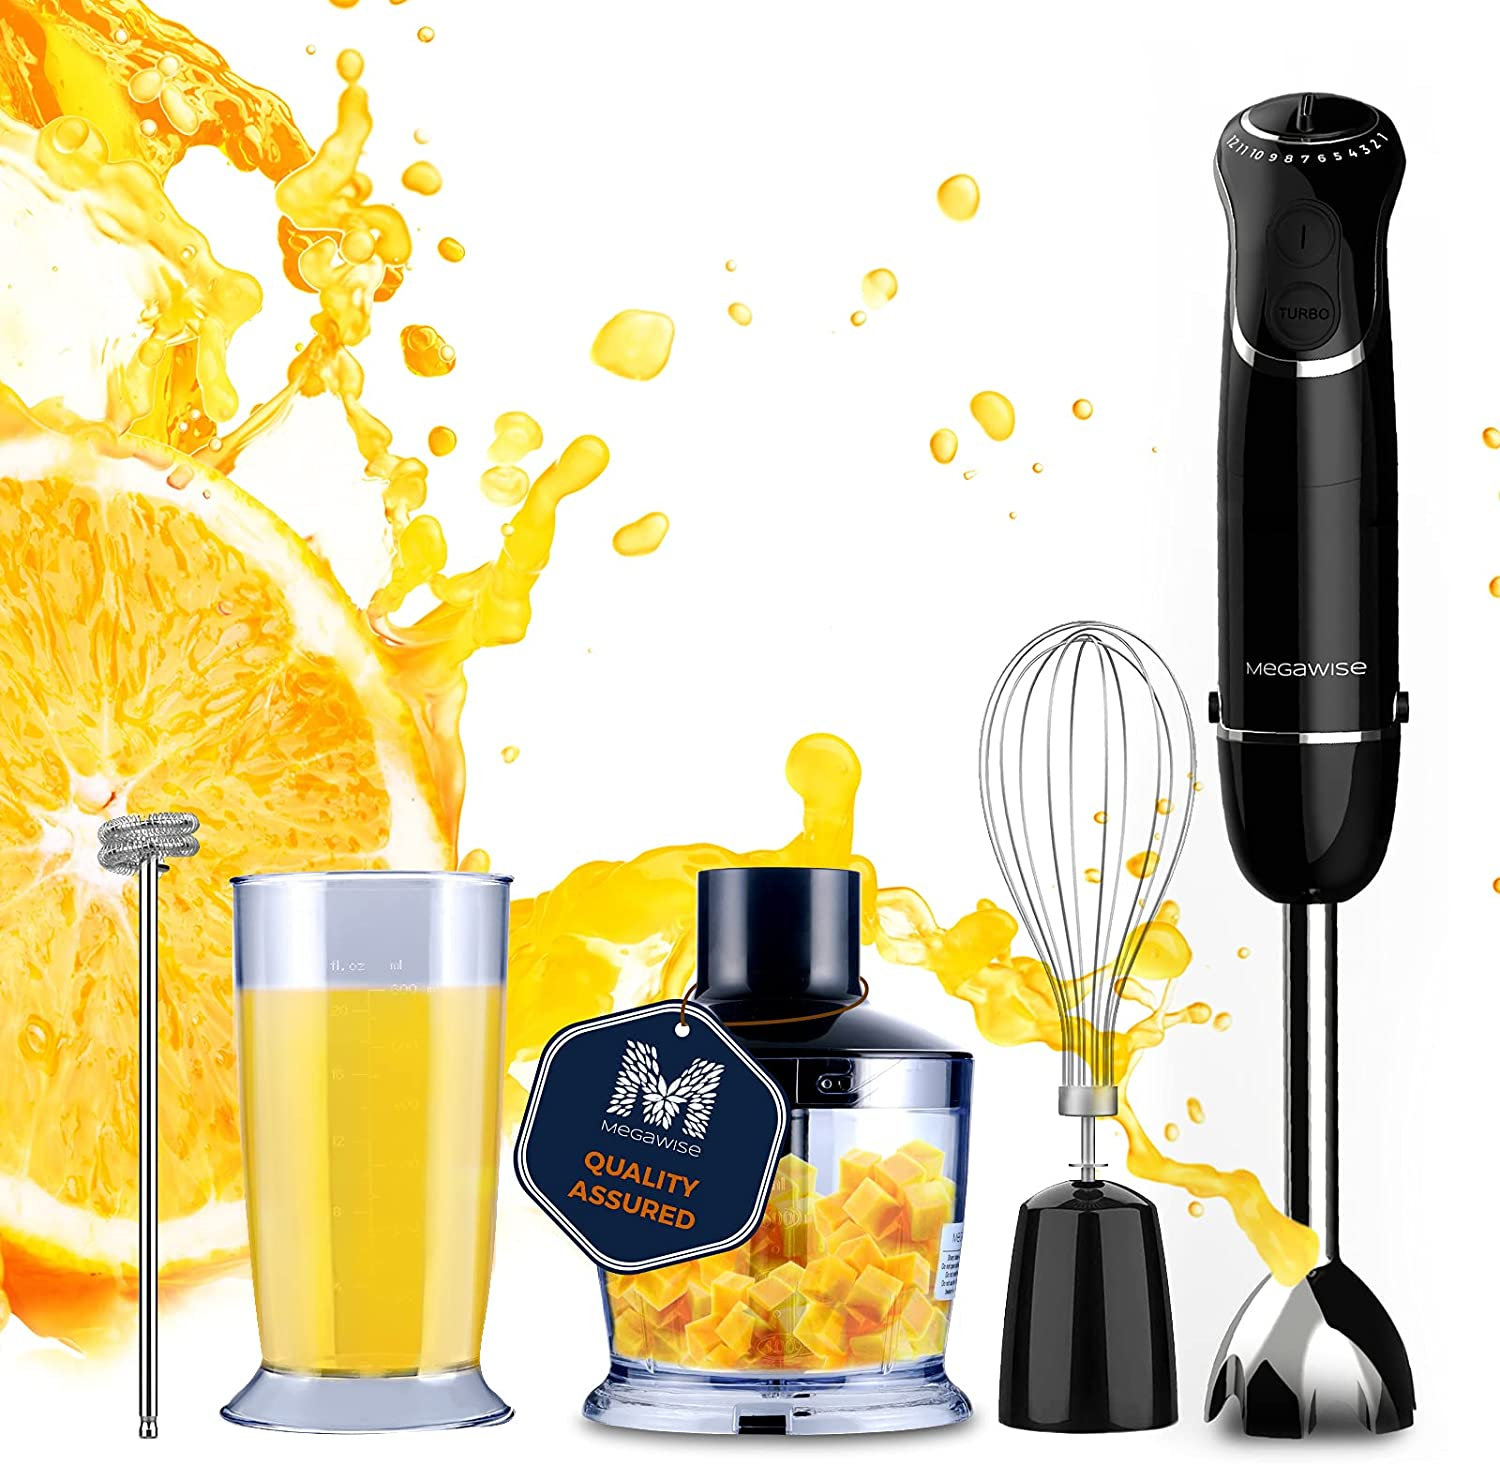 MegaWise Hand Blender Black 800W 5-in-1 Immersion Blender12 Speed and Turbo Mode, Titanium Steel Blades, Comfygrip Handle, with Whisk, Chopper/Grinder Bowl and Beaker/Measuring Cup